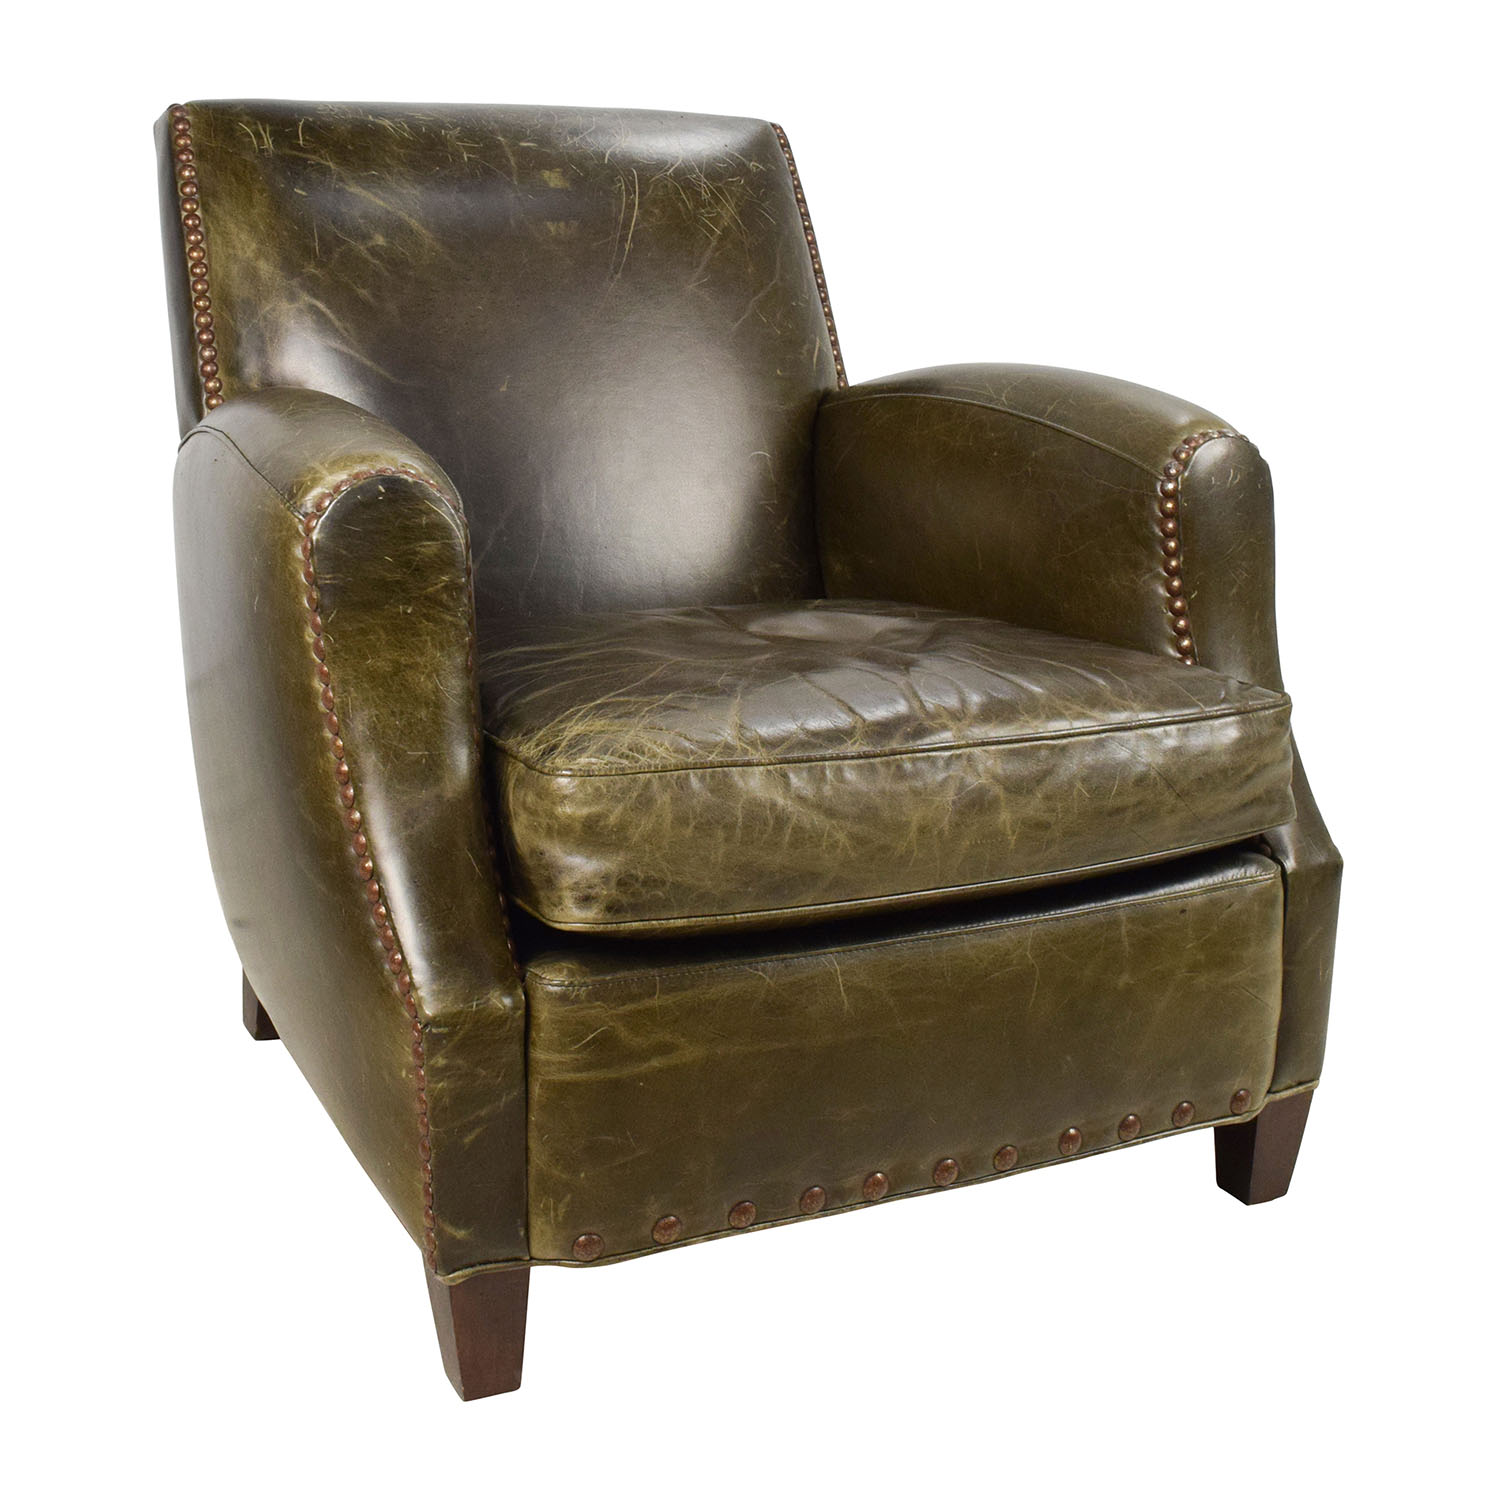 83% OFF   Crate U0026 Barrel Crate U0026 Barrel Metropole Brown Leather Armchair /  Chairs